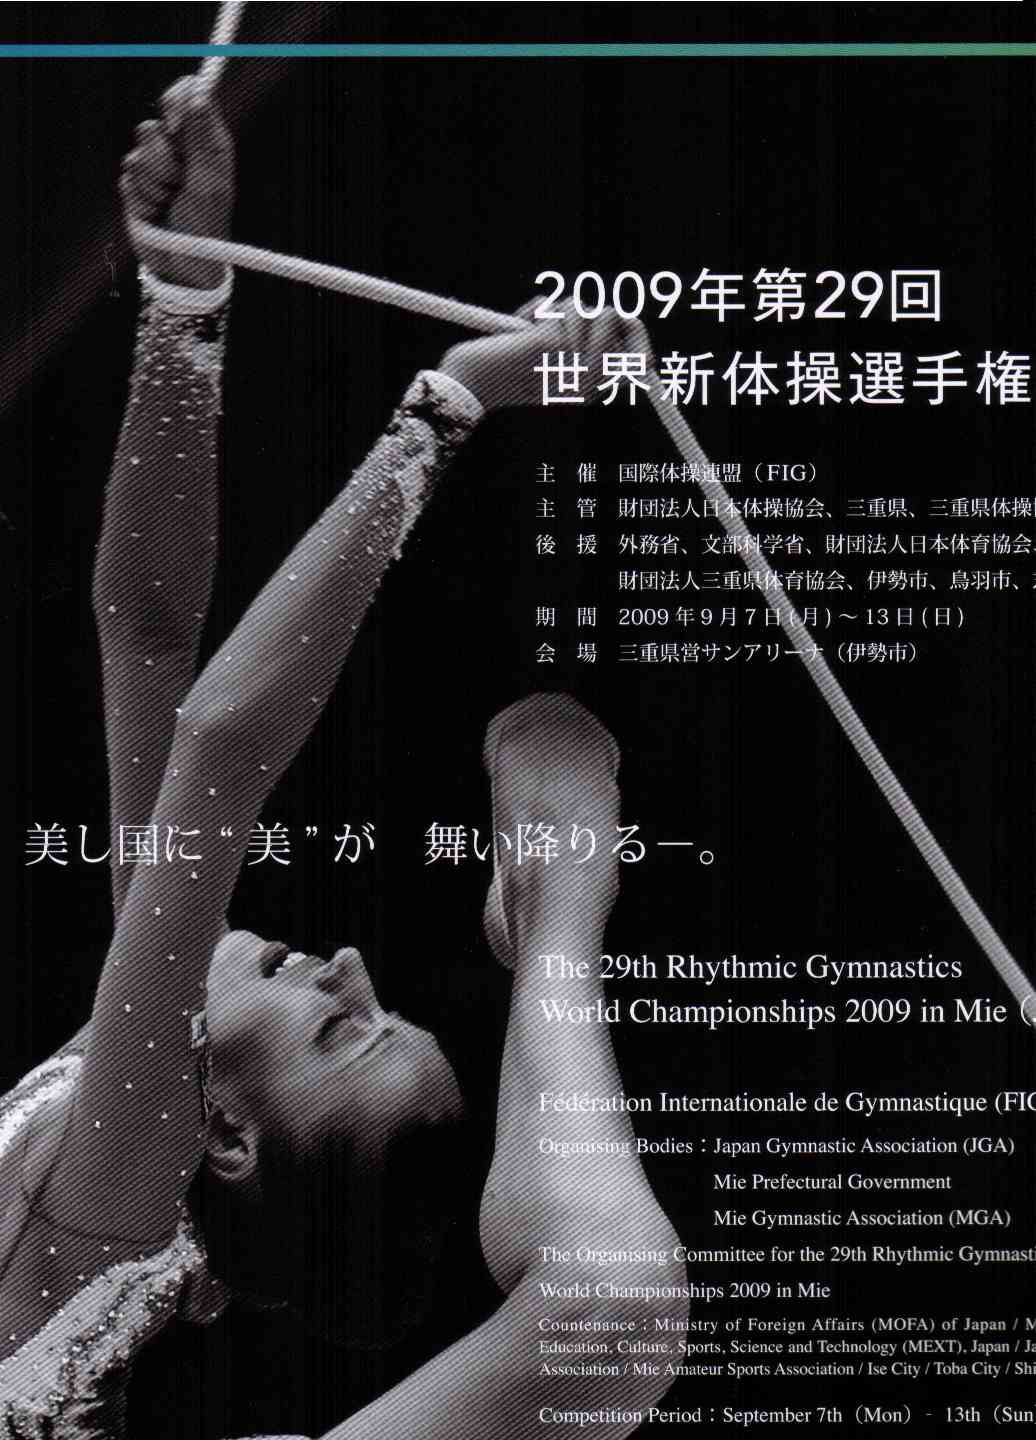 41505_official_programme-WC_Mie_2009_122_406lo.jpg